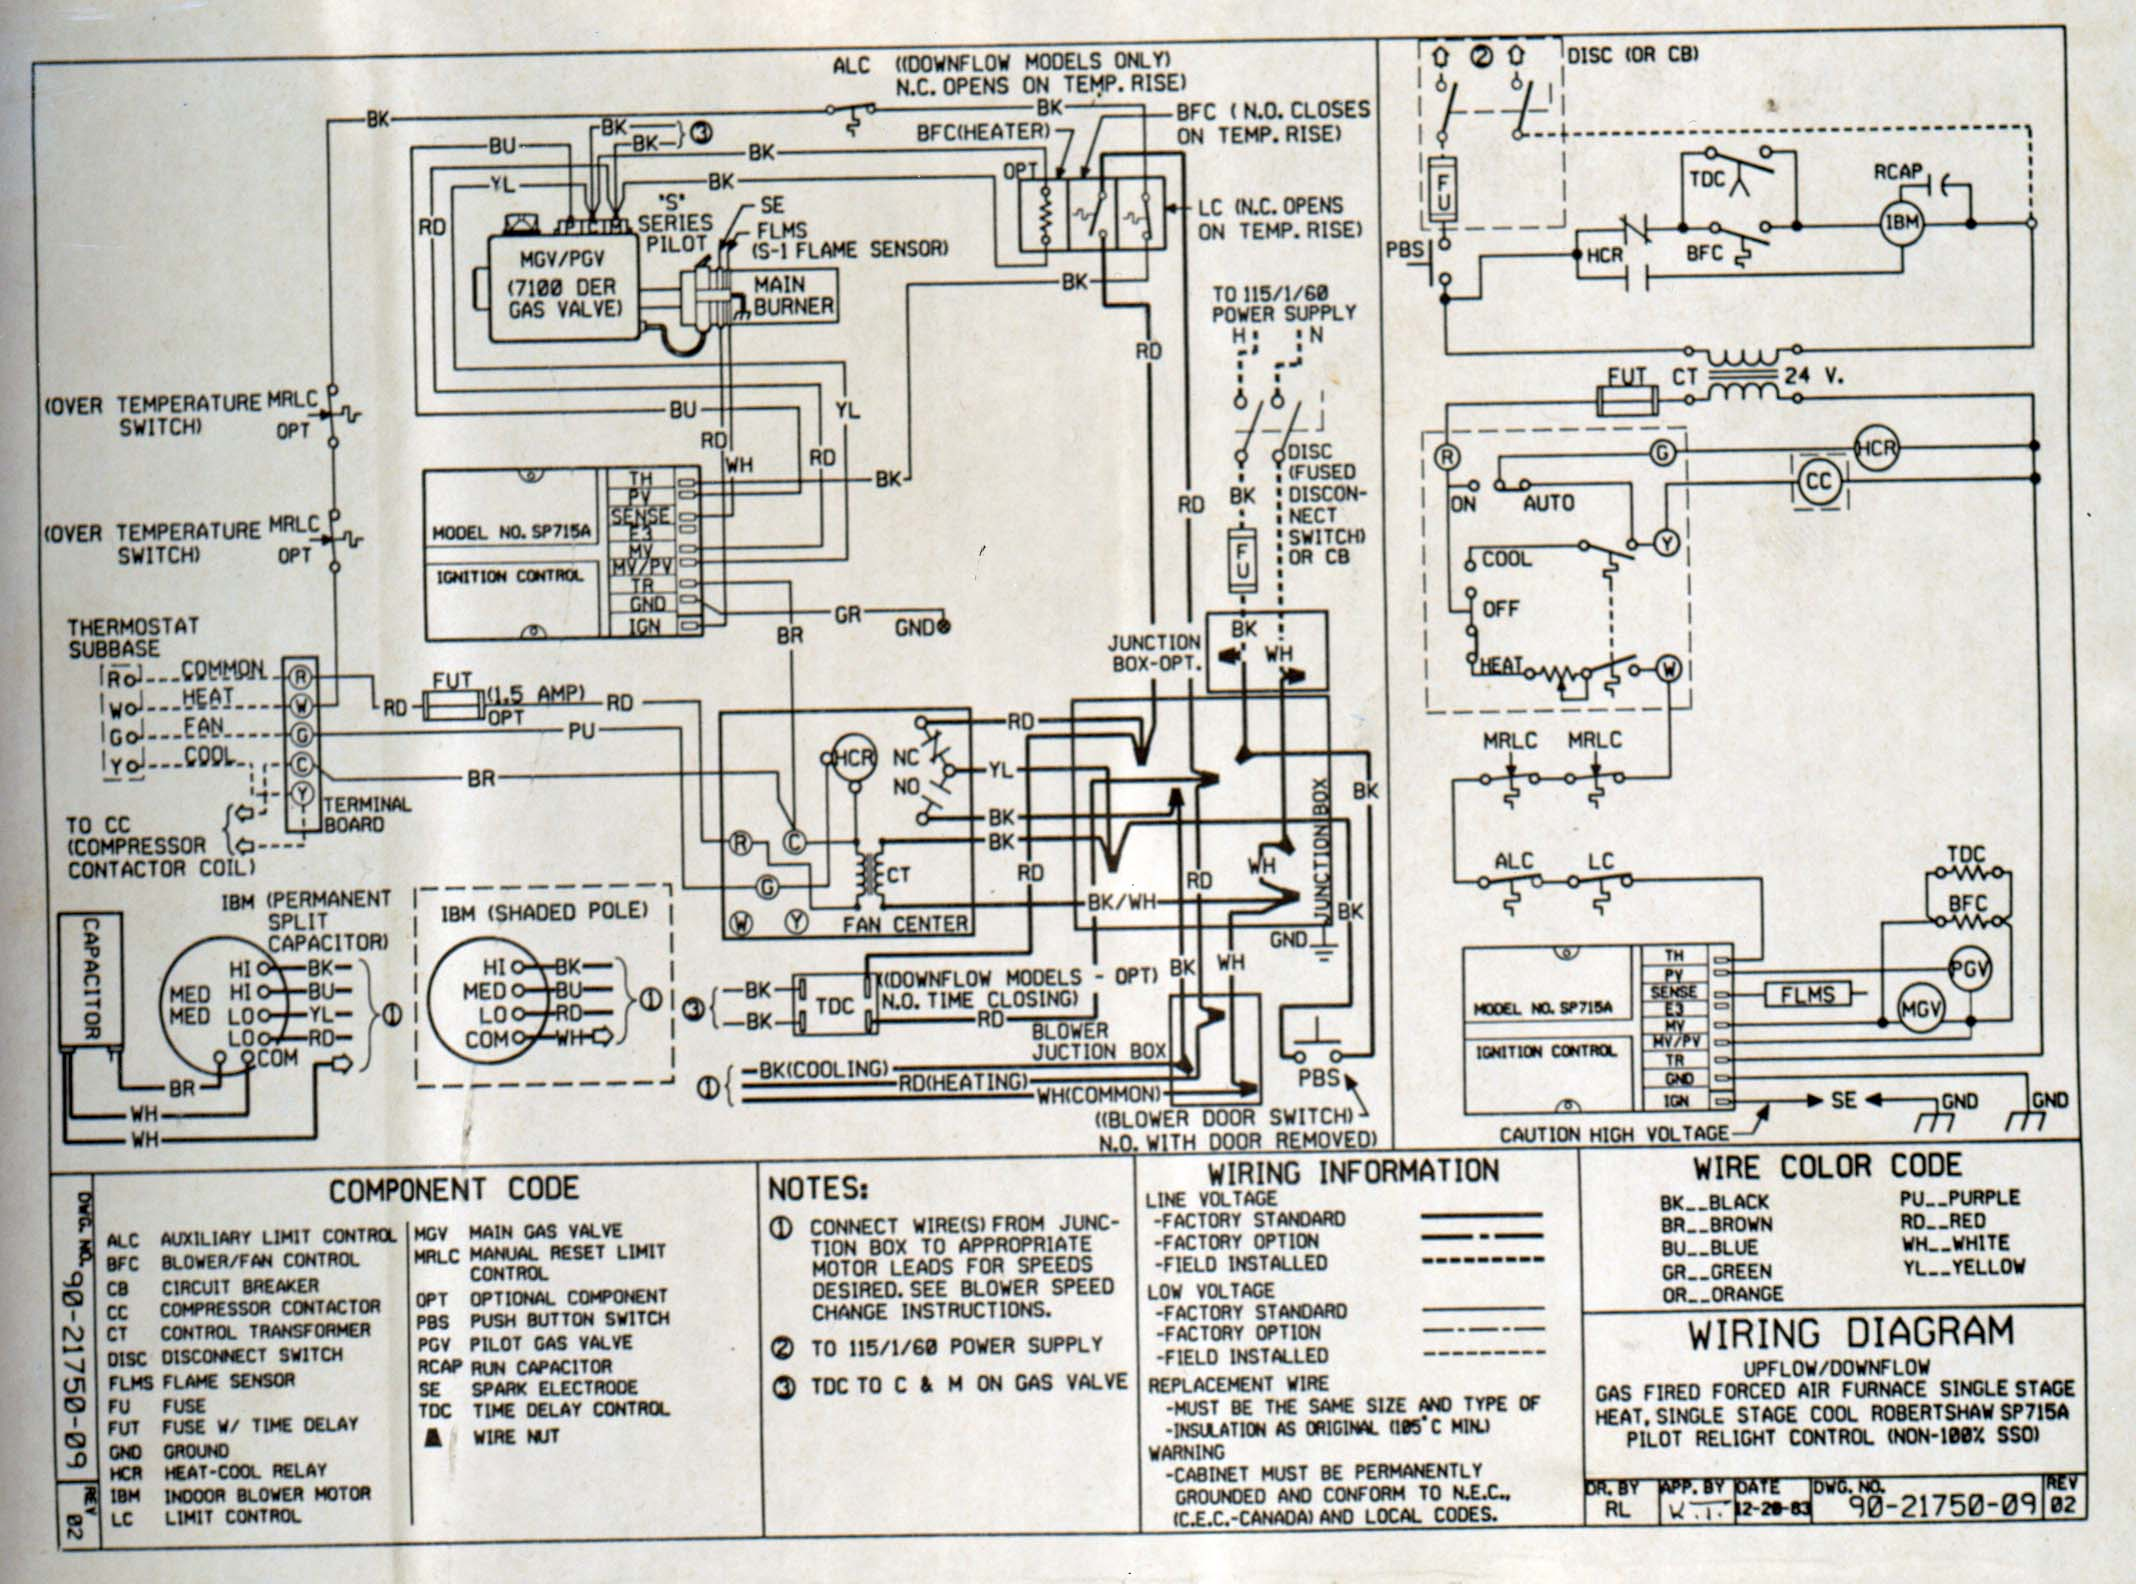 armstrong circuit board wiring diagram best wiring library Wiring Armstrong Diagram Pge10c60d150c armstrong furnace wiring diagram wiring diagram data york furnace wiring diagram armstrong furnace wiring diagram wiring